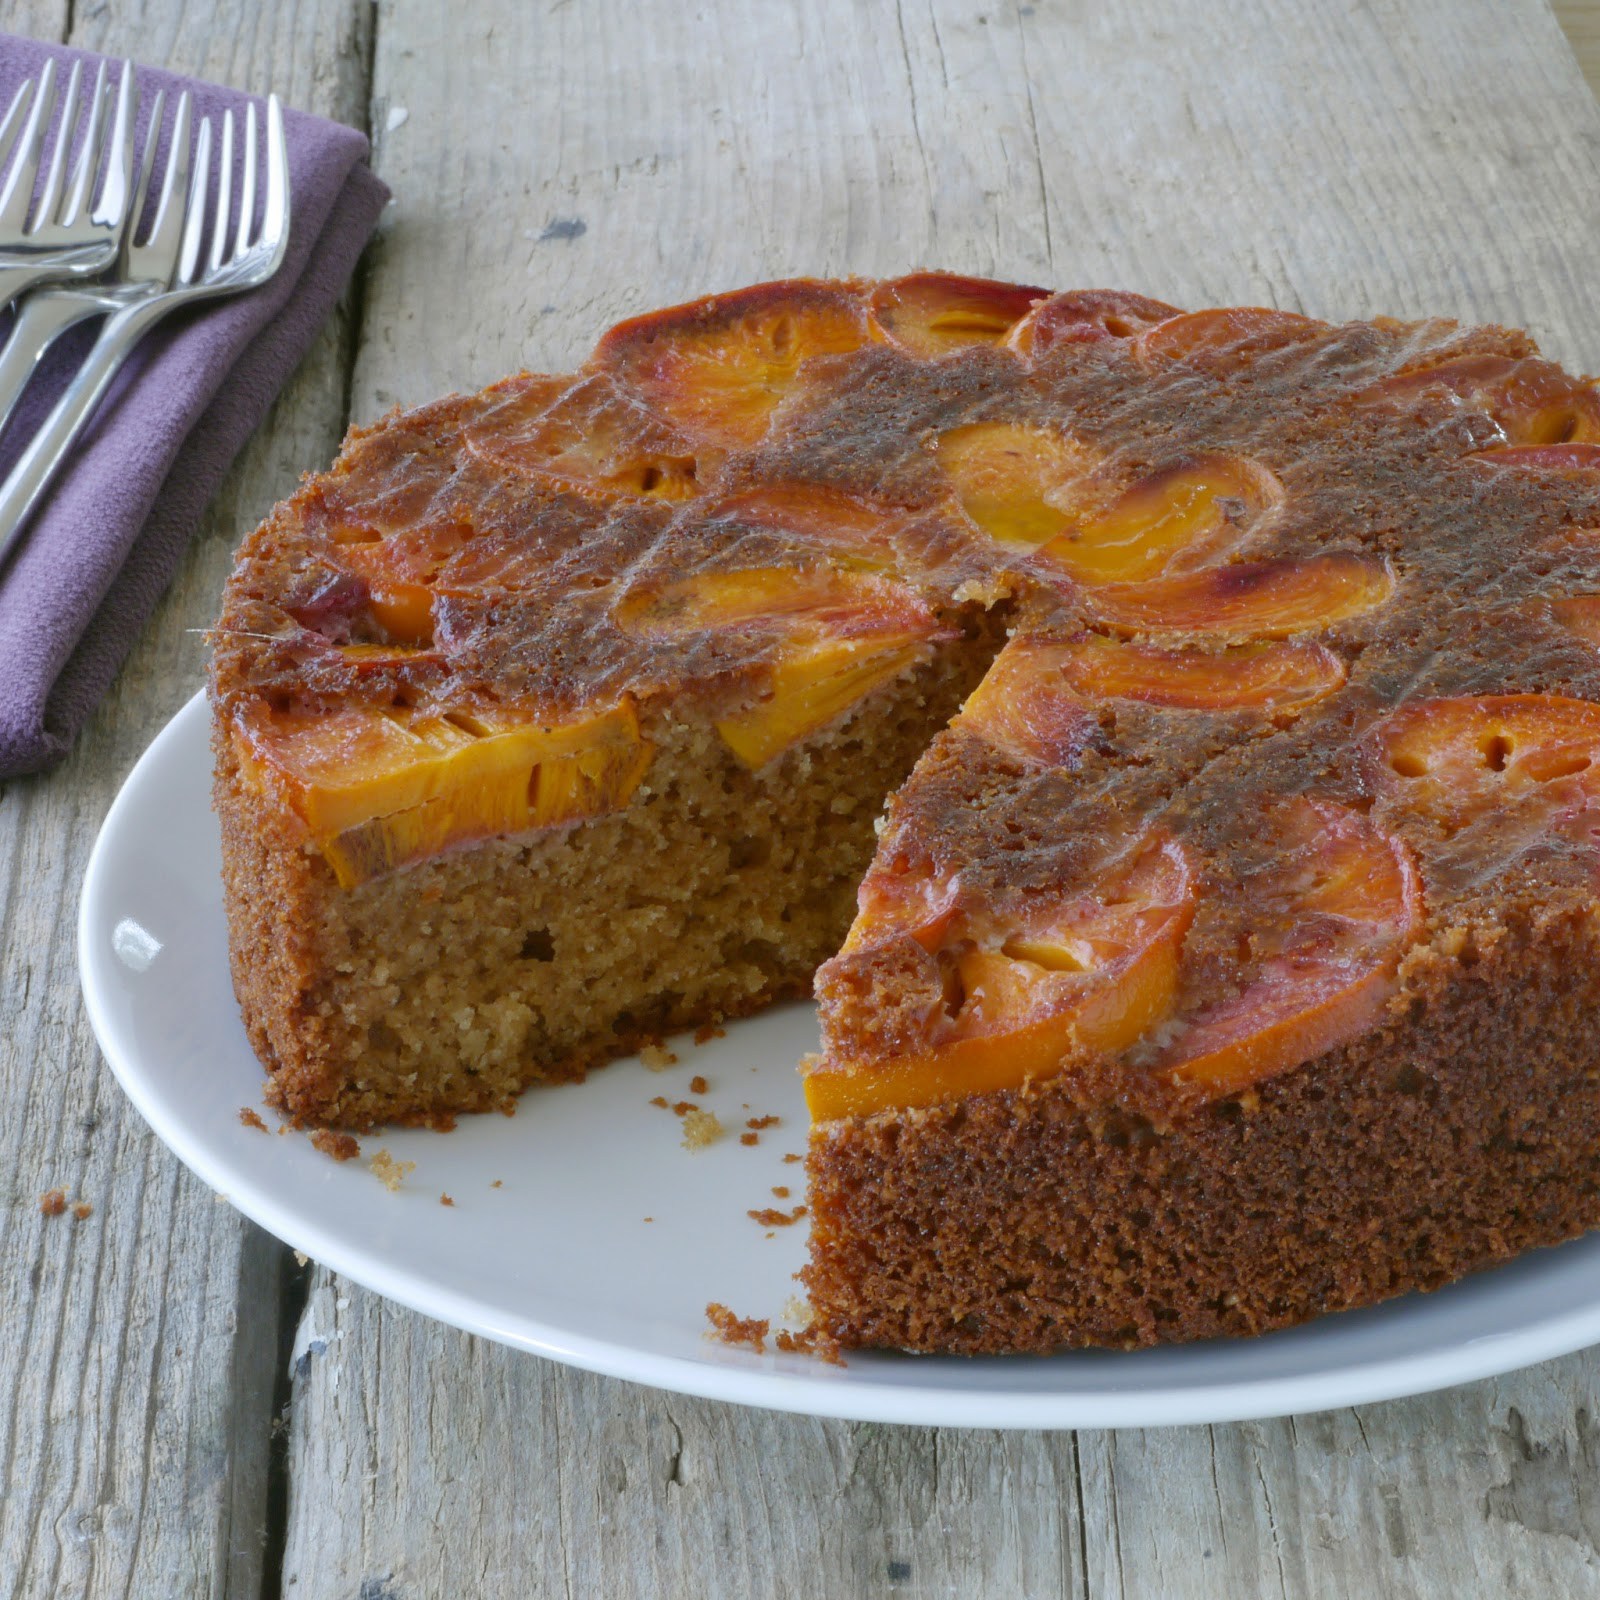 persimmon upside down cake makes 1 8 inch cake 4